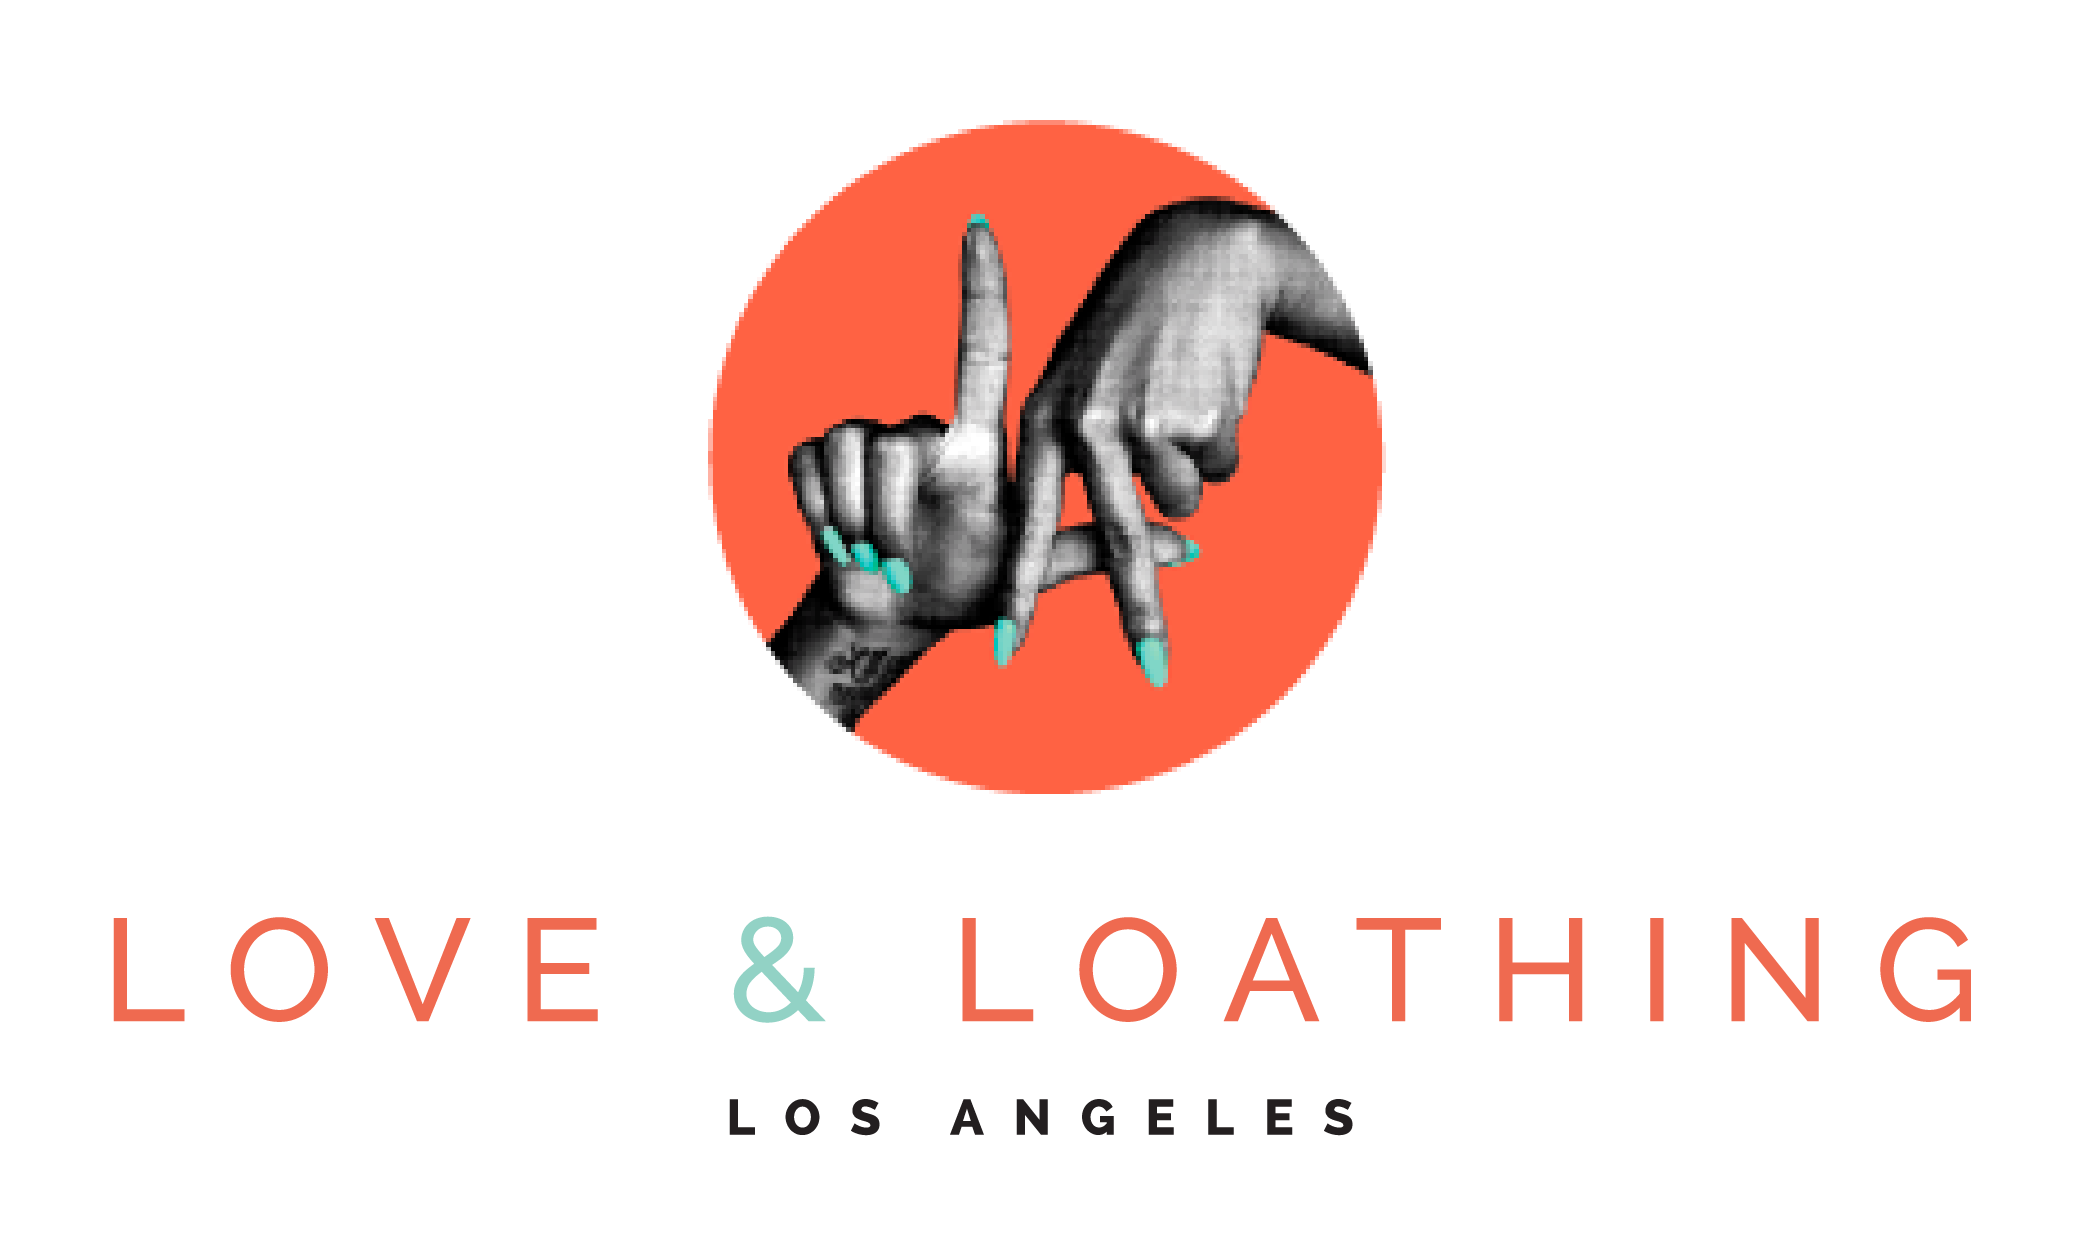 Love & Loathing Los Angeles